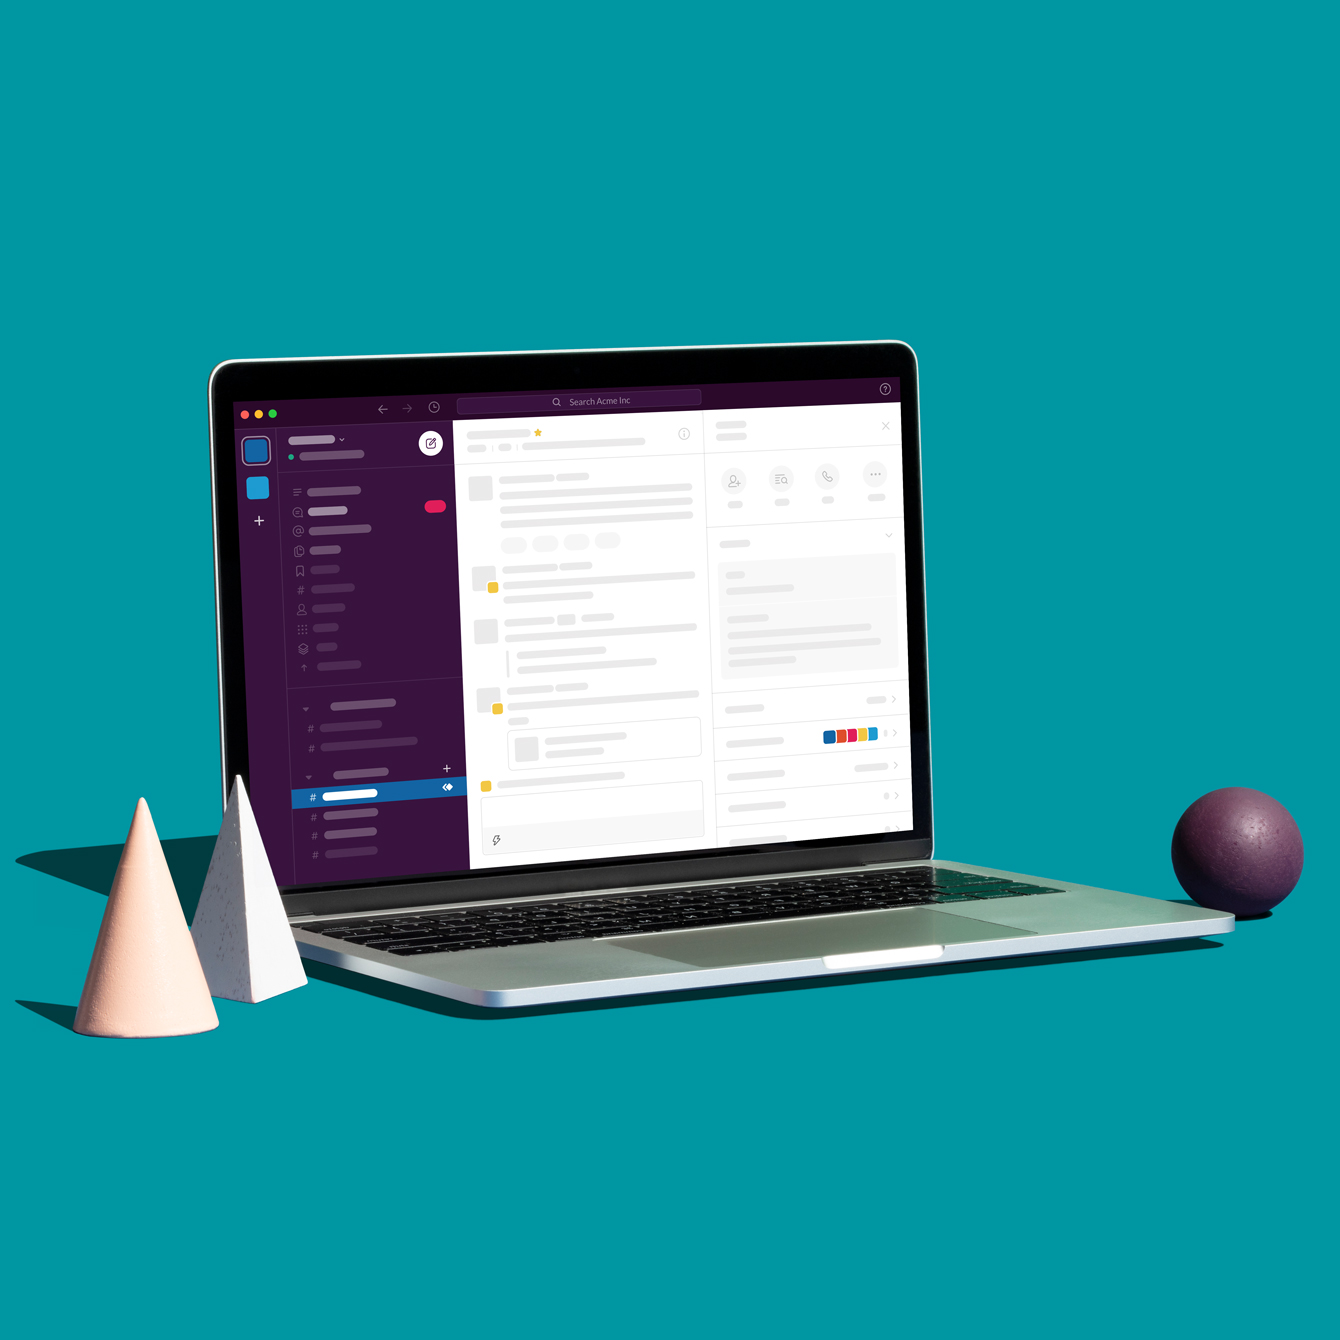 A laptop showing the Slack desktop app